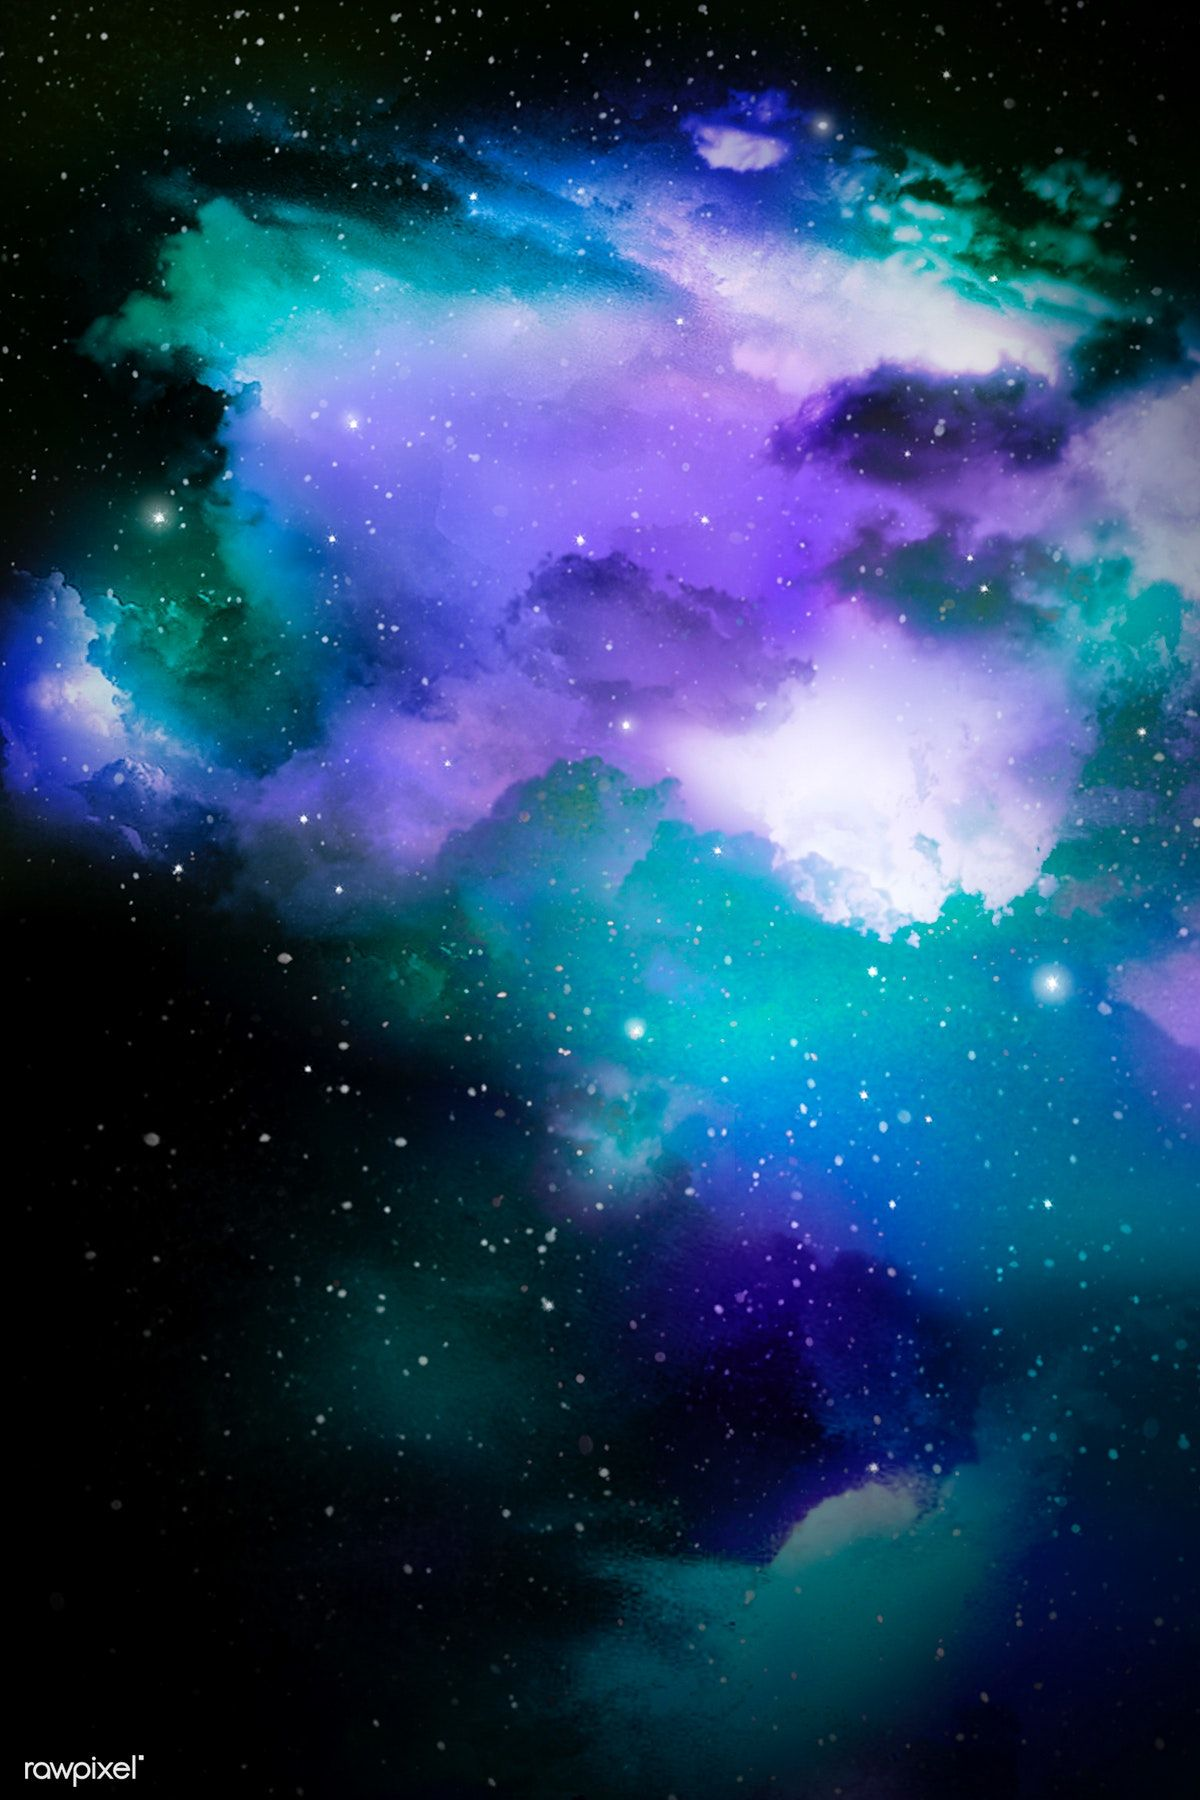 Colorful Abstract Universe Textured Background Free Image By Rawpixel Com Niwat Galaxy Background Free Illustrations Textured Background